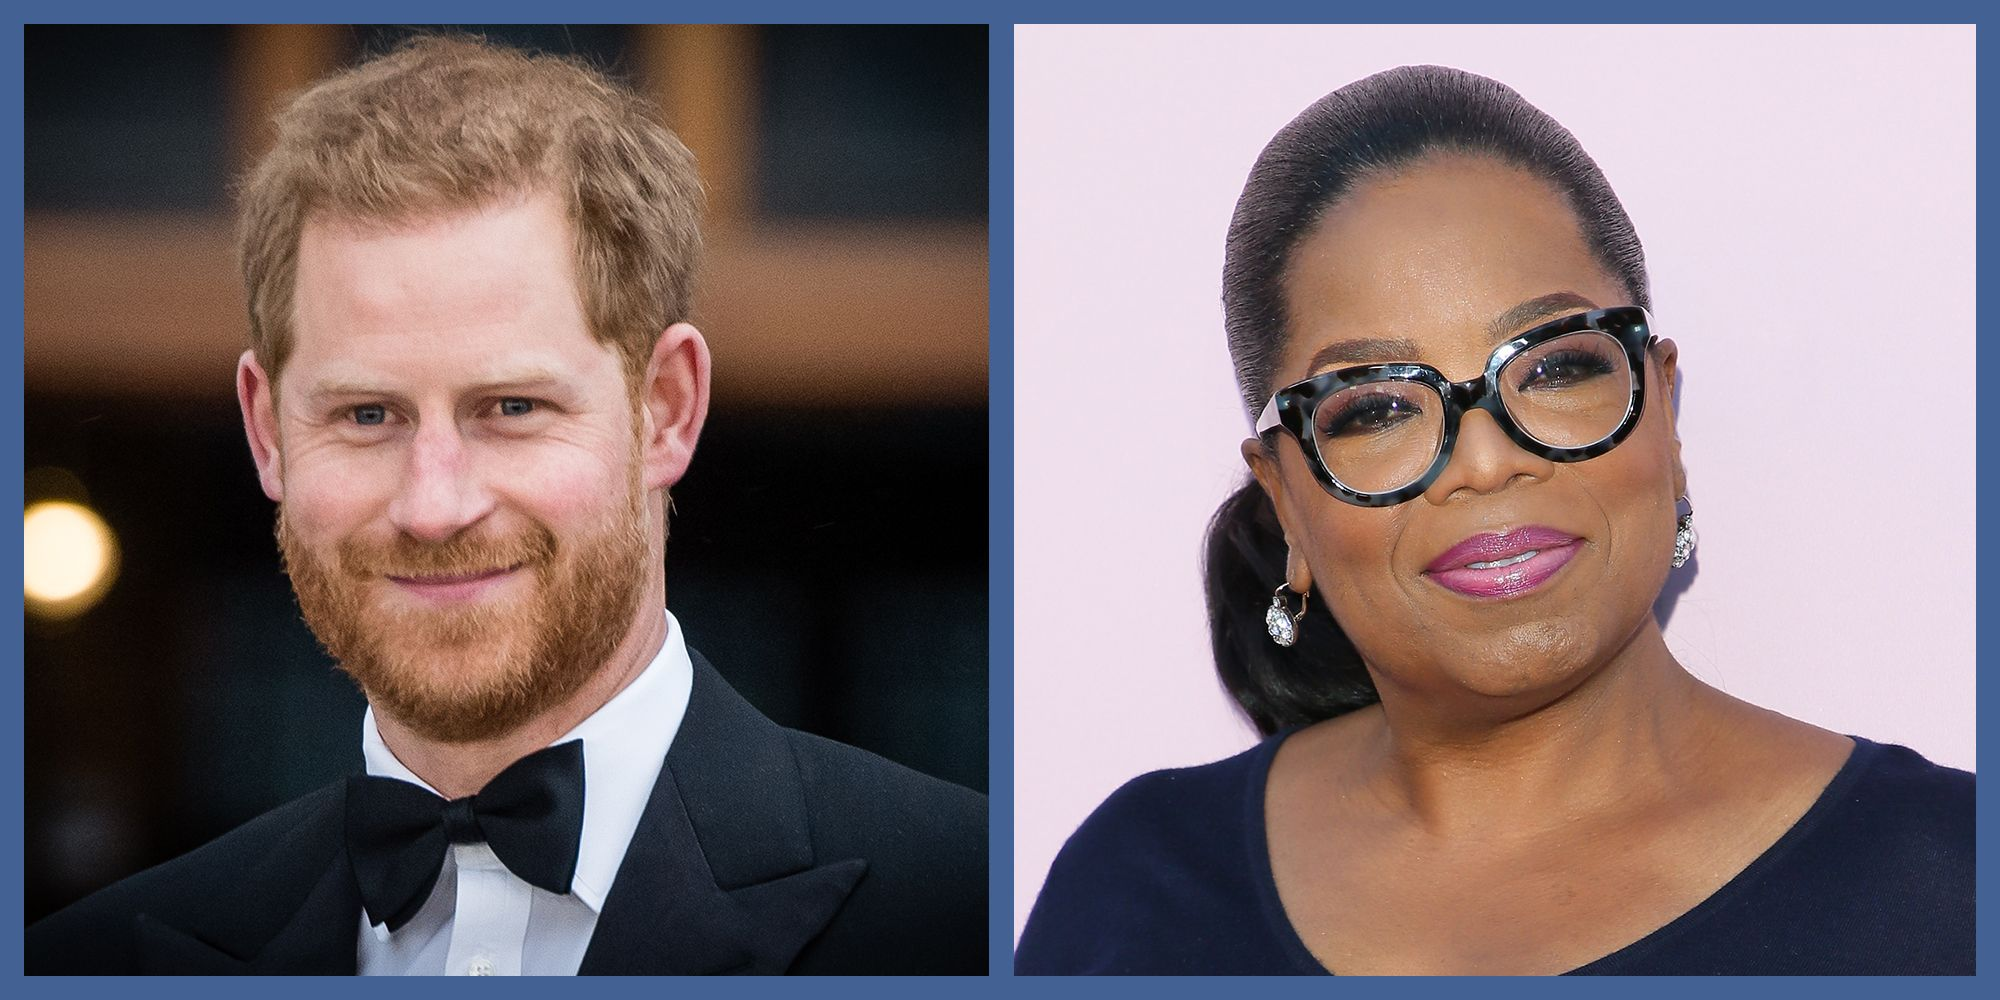 Prince Harry Is Teaming Up With Oprah on a Documentary Series About Mental Health